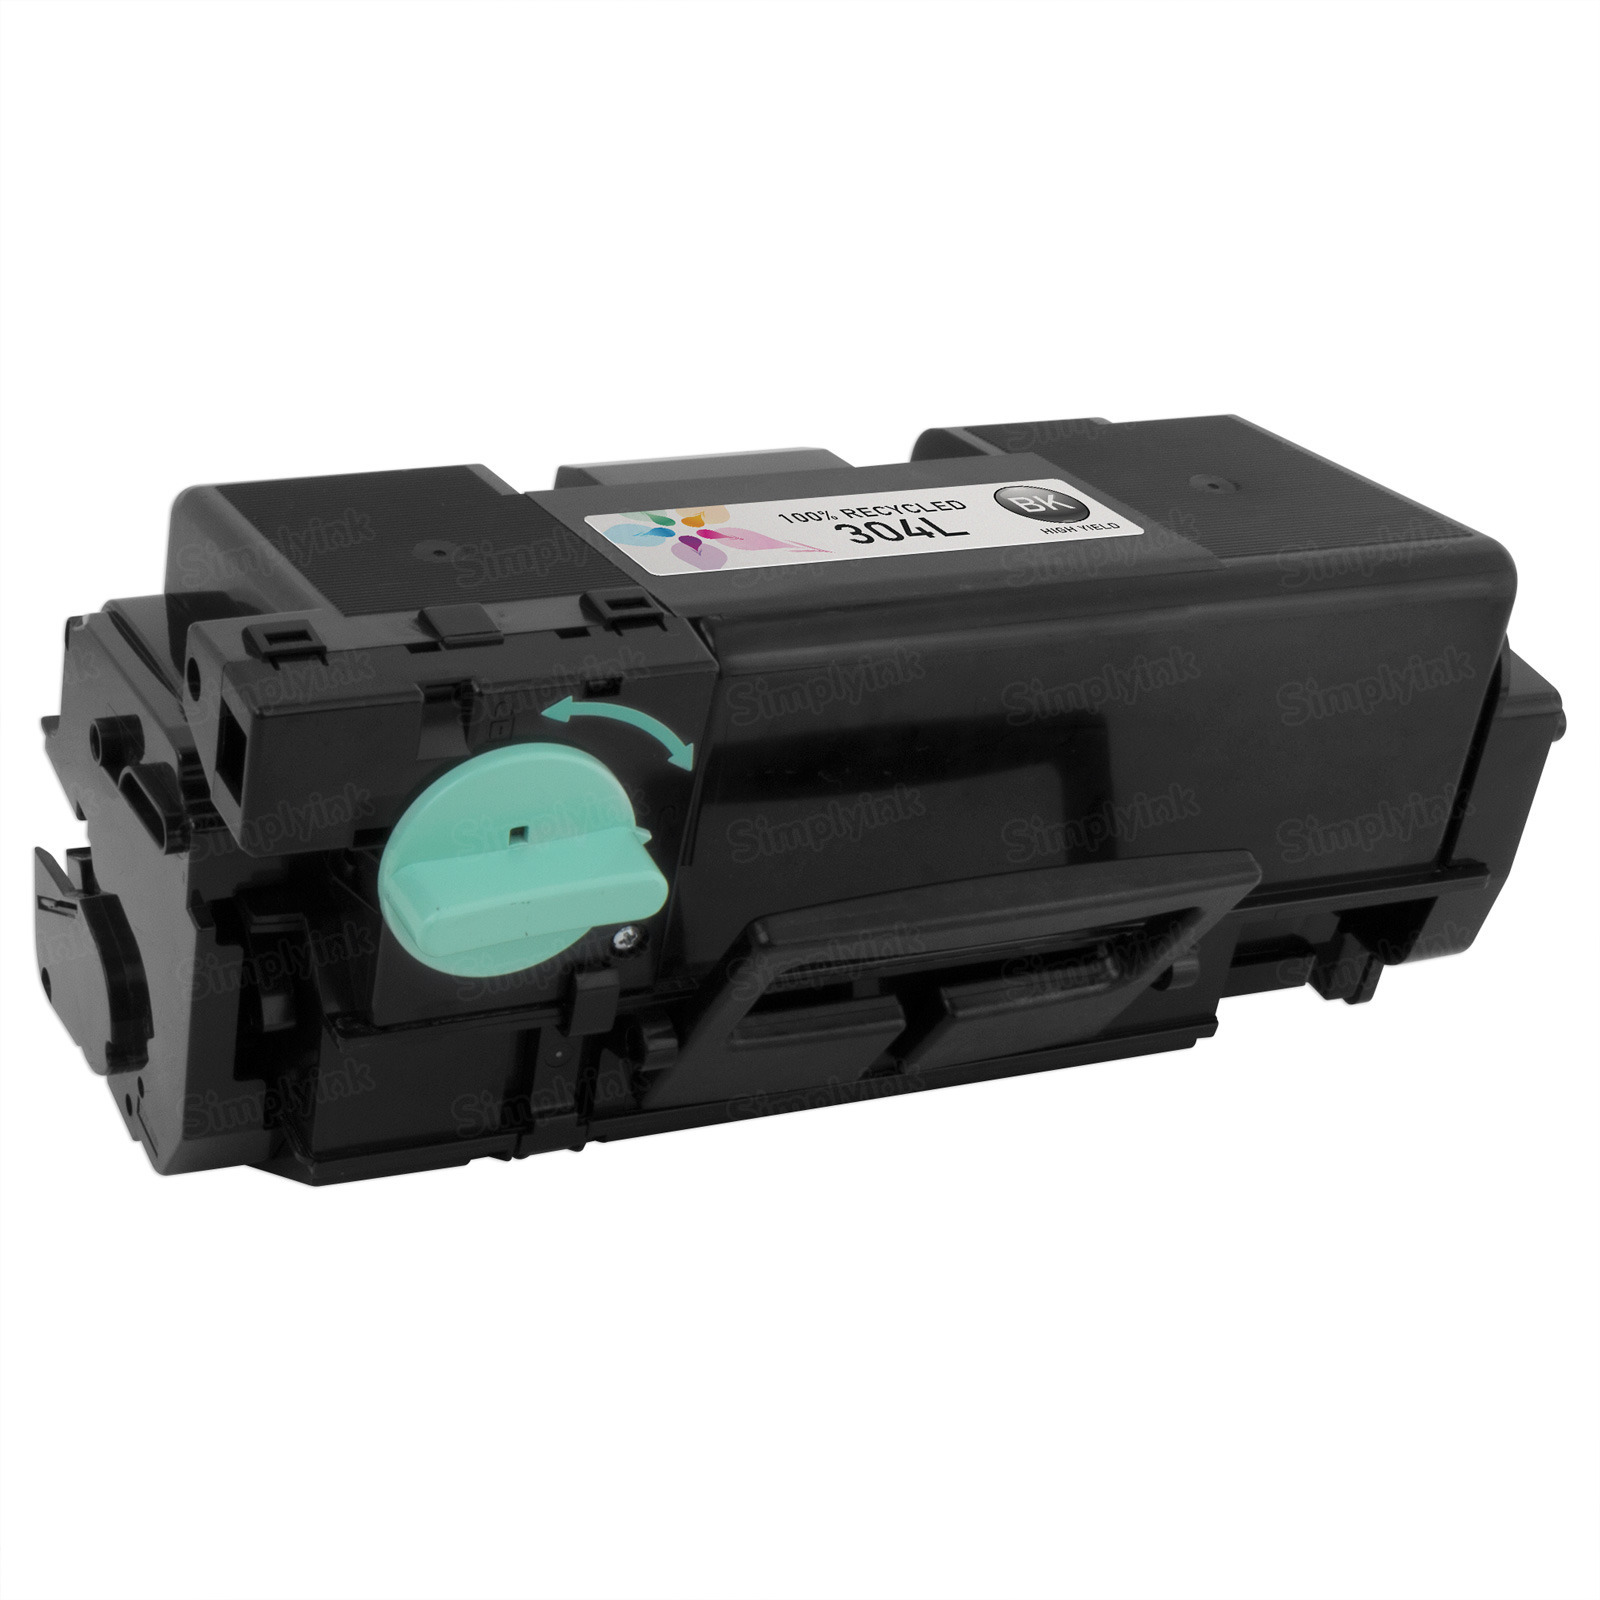 Remanufactured High Yield Black Toner for Samsung (304L)